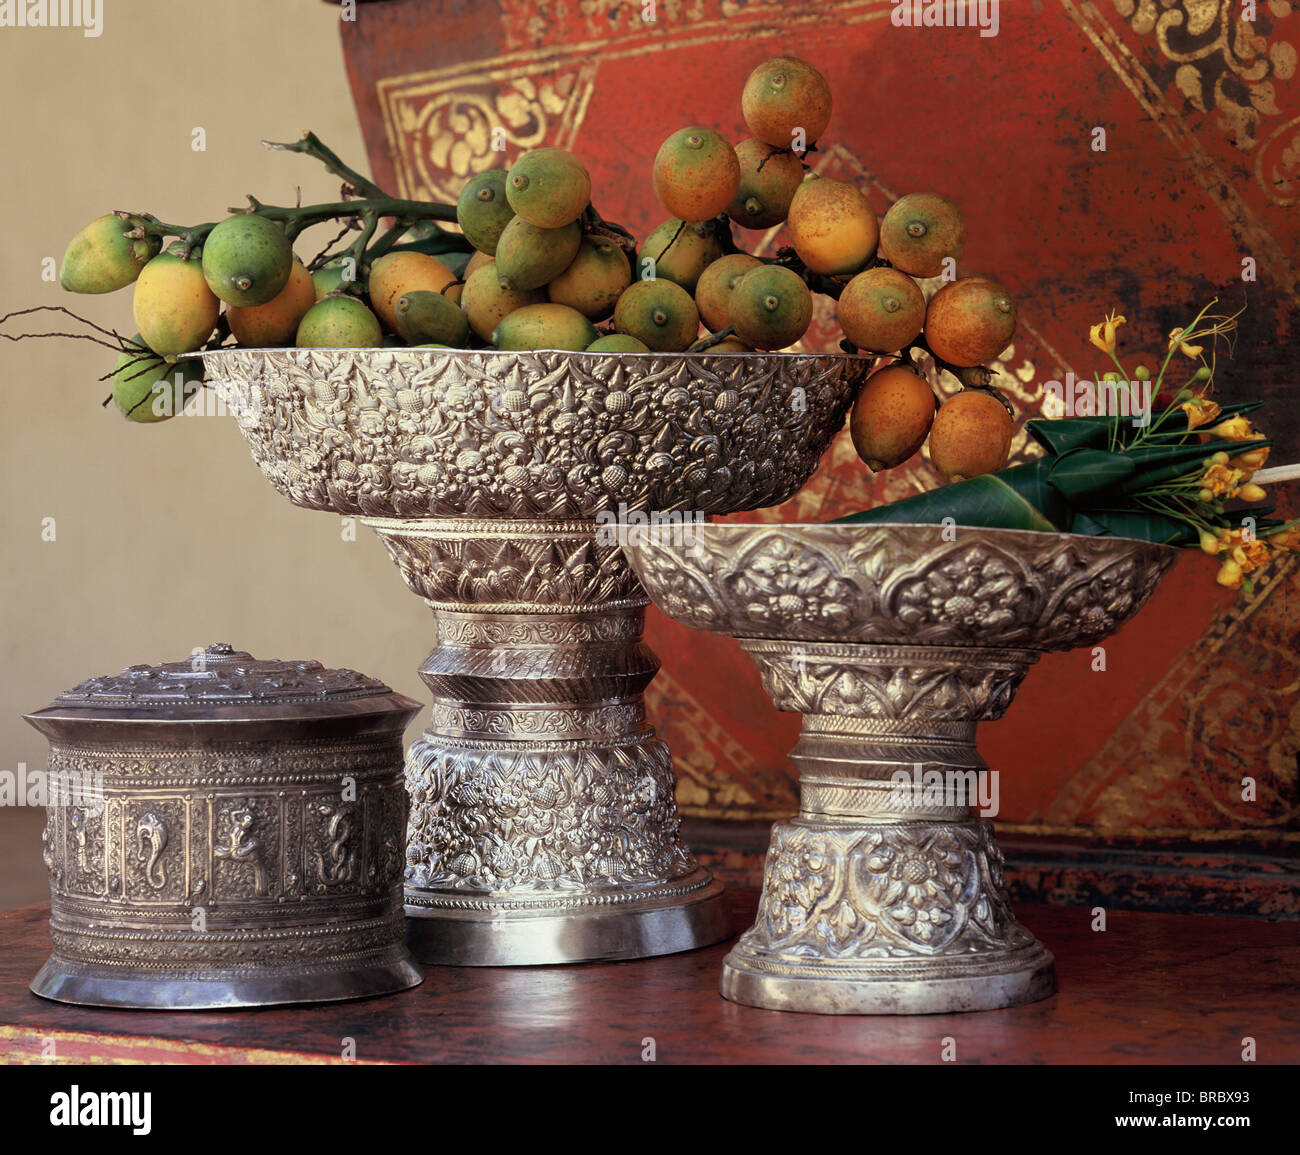 Silver trays holding betel nuts, Northern Thai craftmanship, Chiang Mai, Thailand - Stock Image